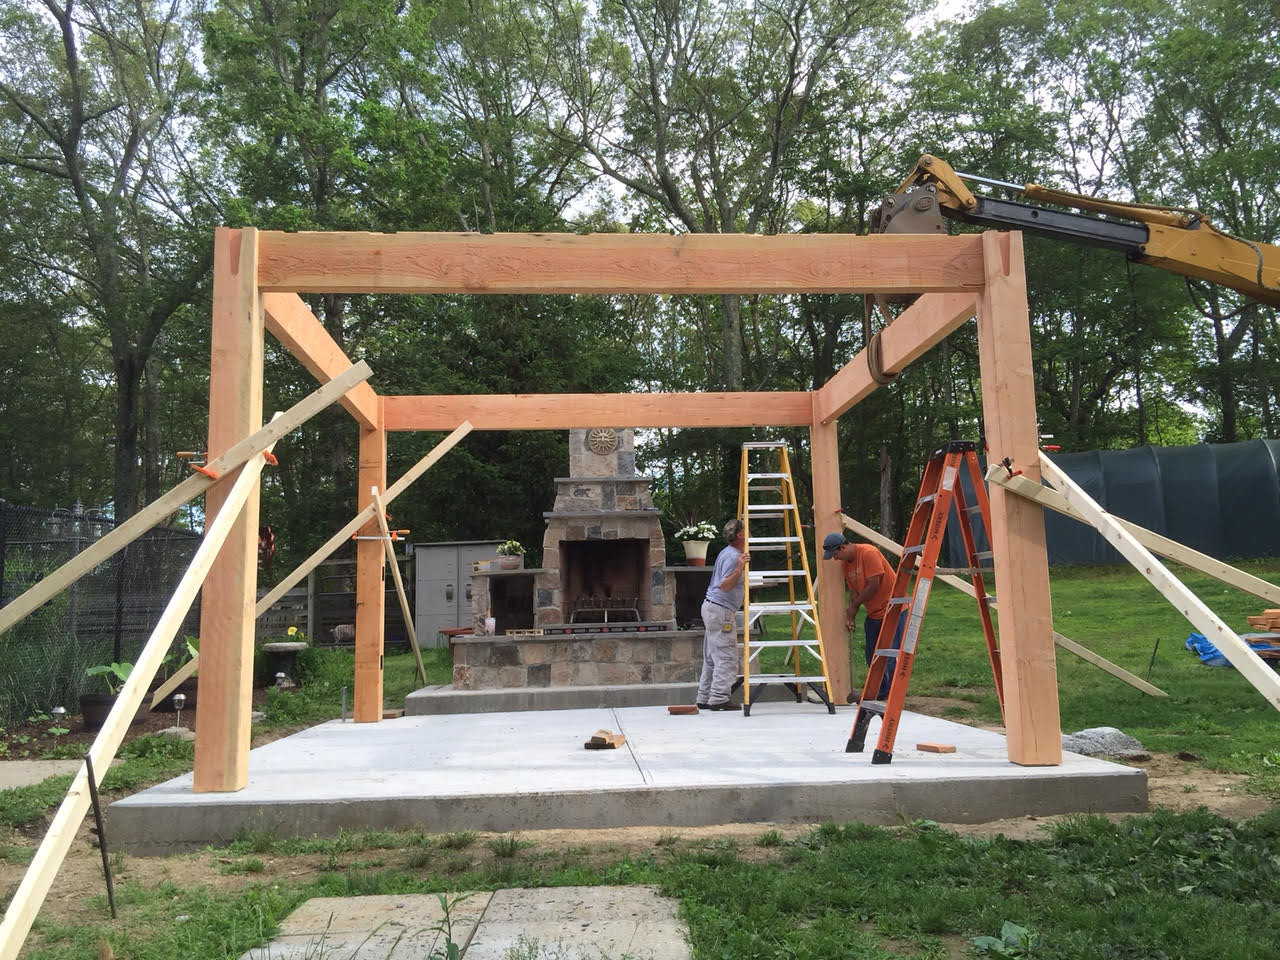 Best ideas about DIY Timber Frame Kit . Save or Pin Before & After DIY Pergola Kit for Rhode Island Fireplace Now.